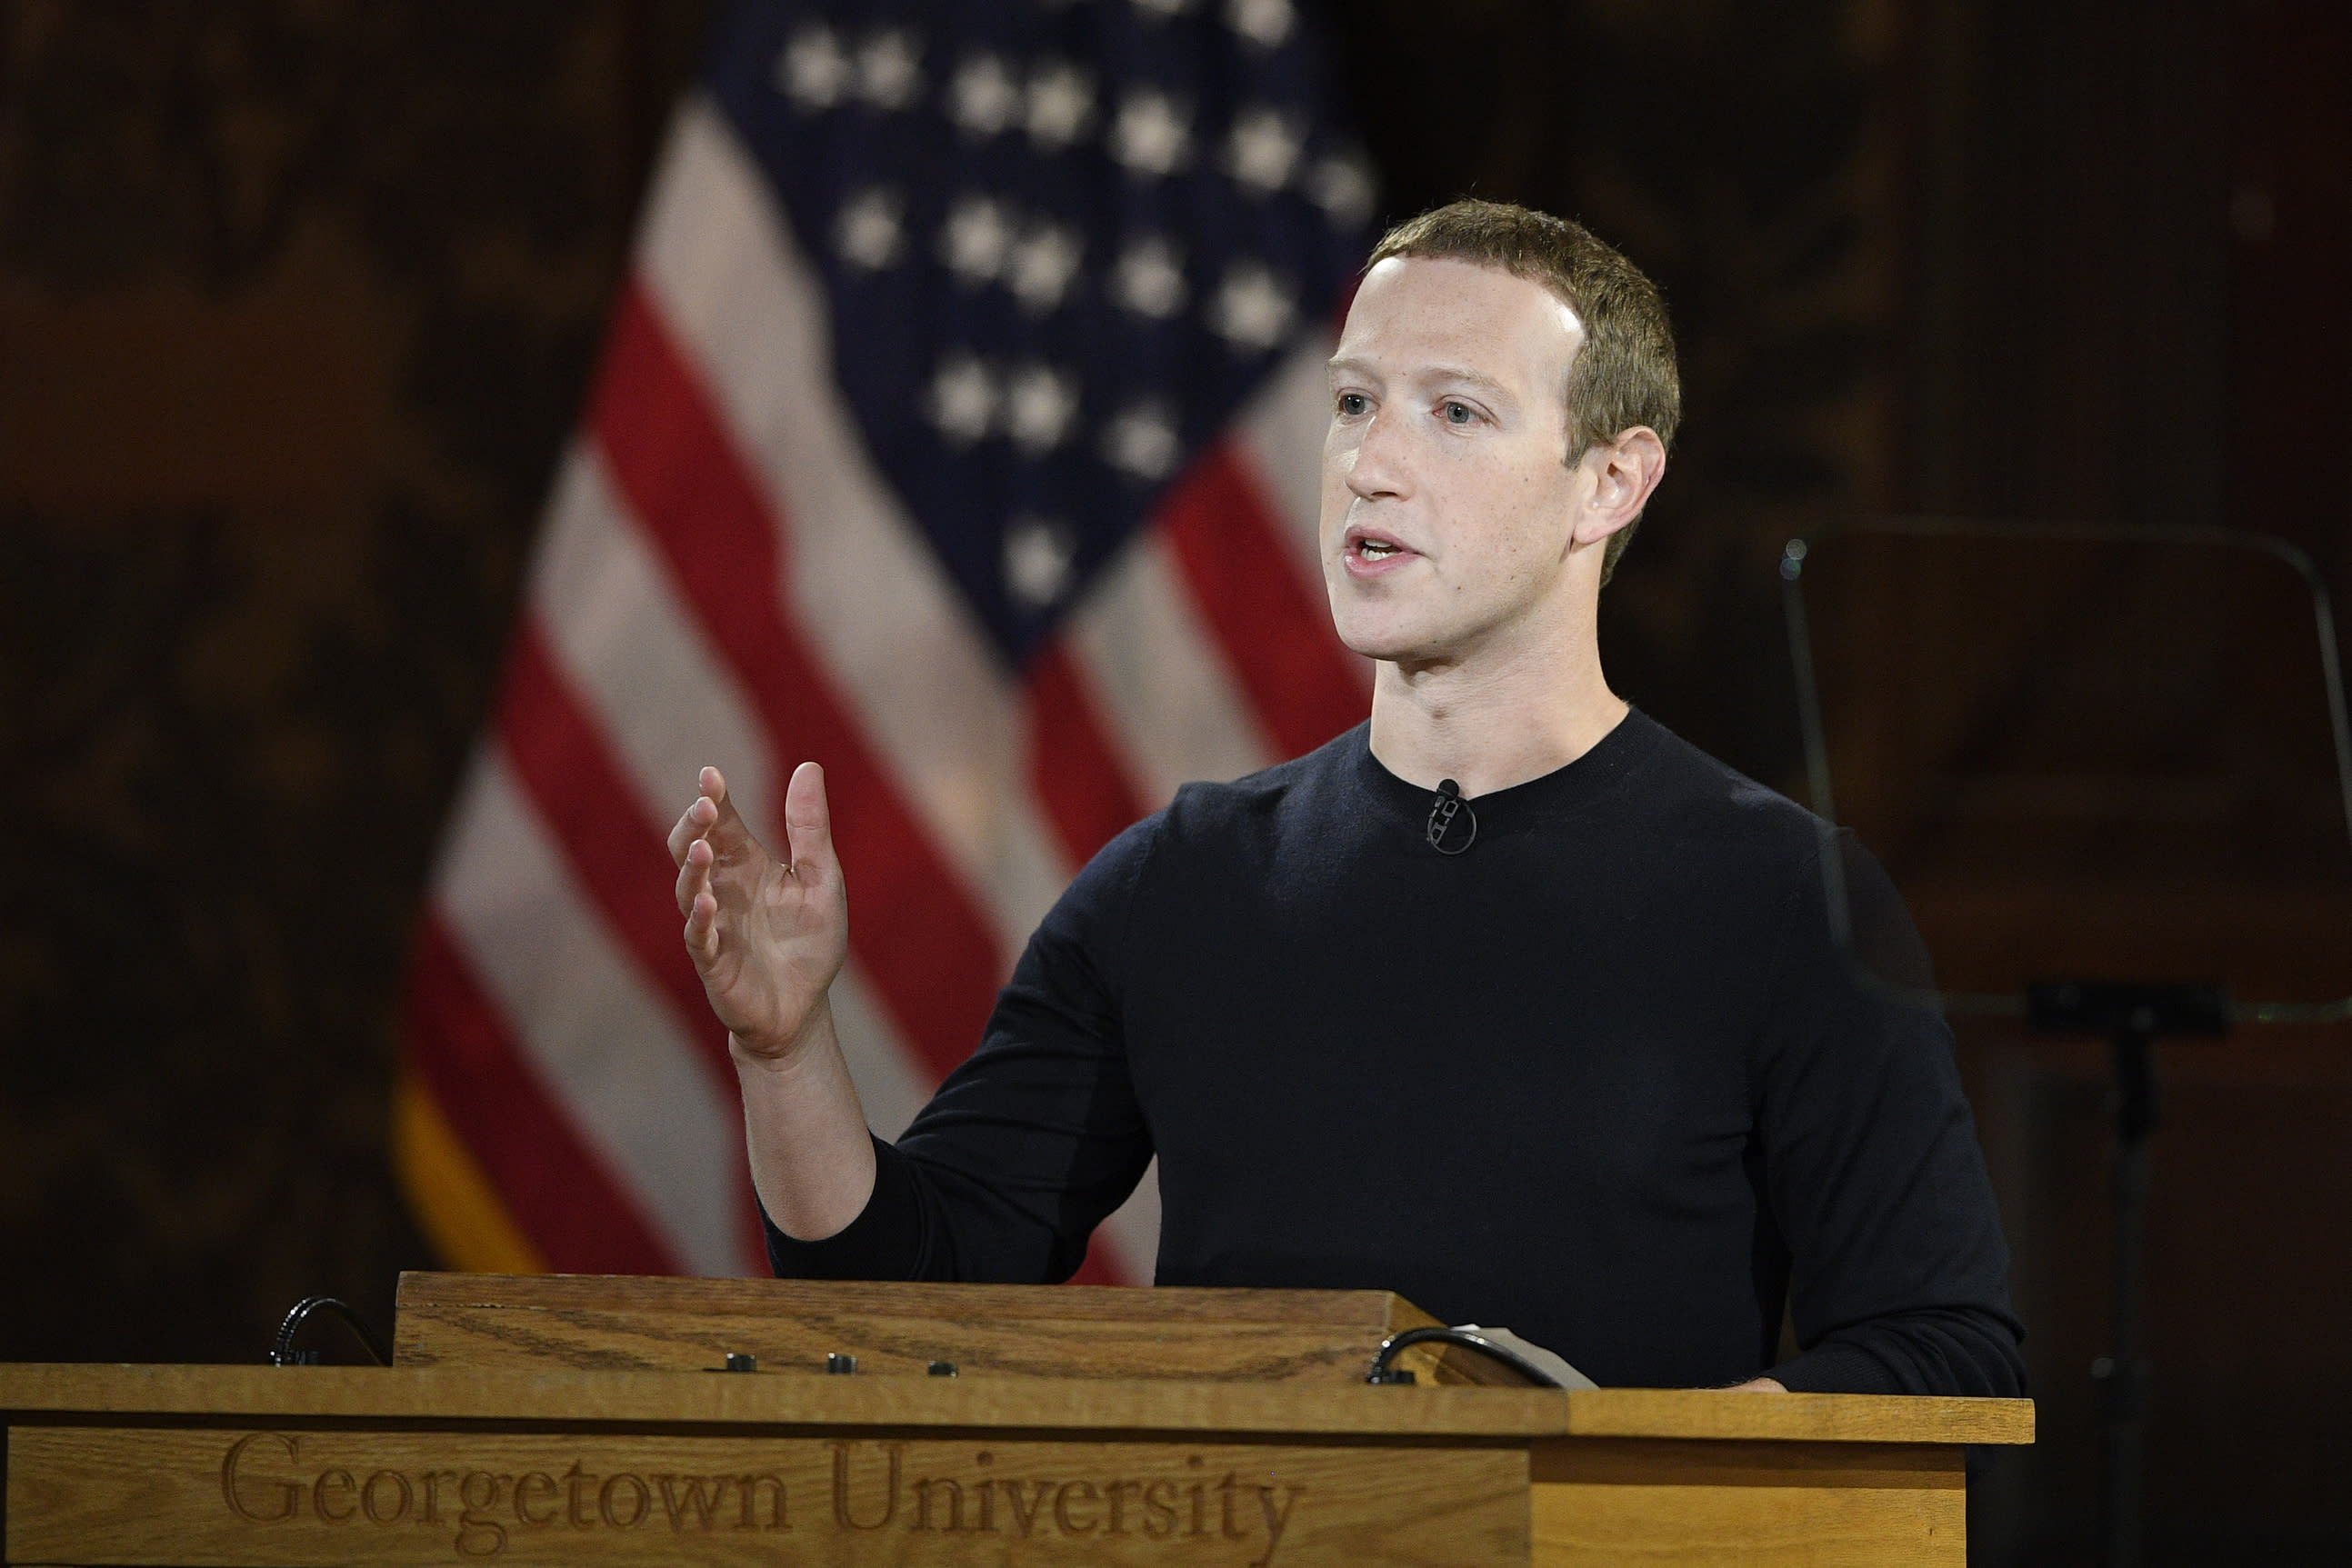 Facebook announces new tools to protect 2020 United States  elections